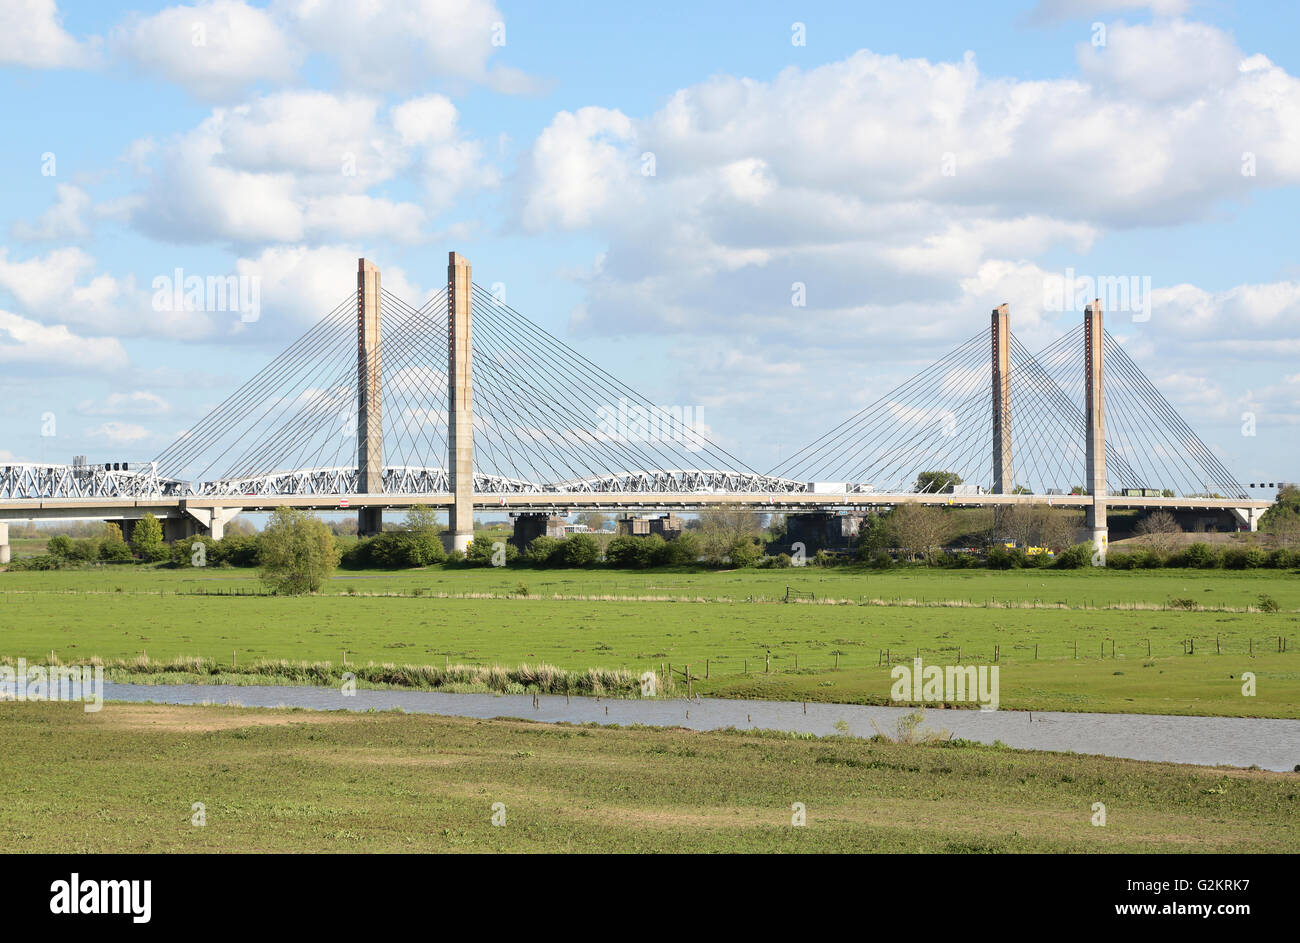 View on the Martinus Nijhoffbridge in the Netherlands - Stock Image